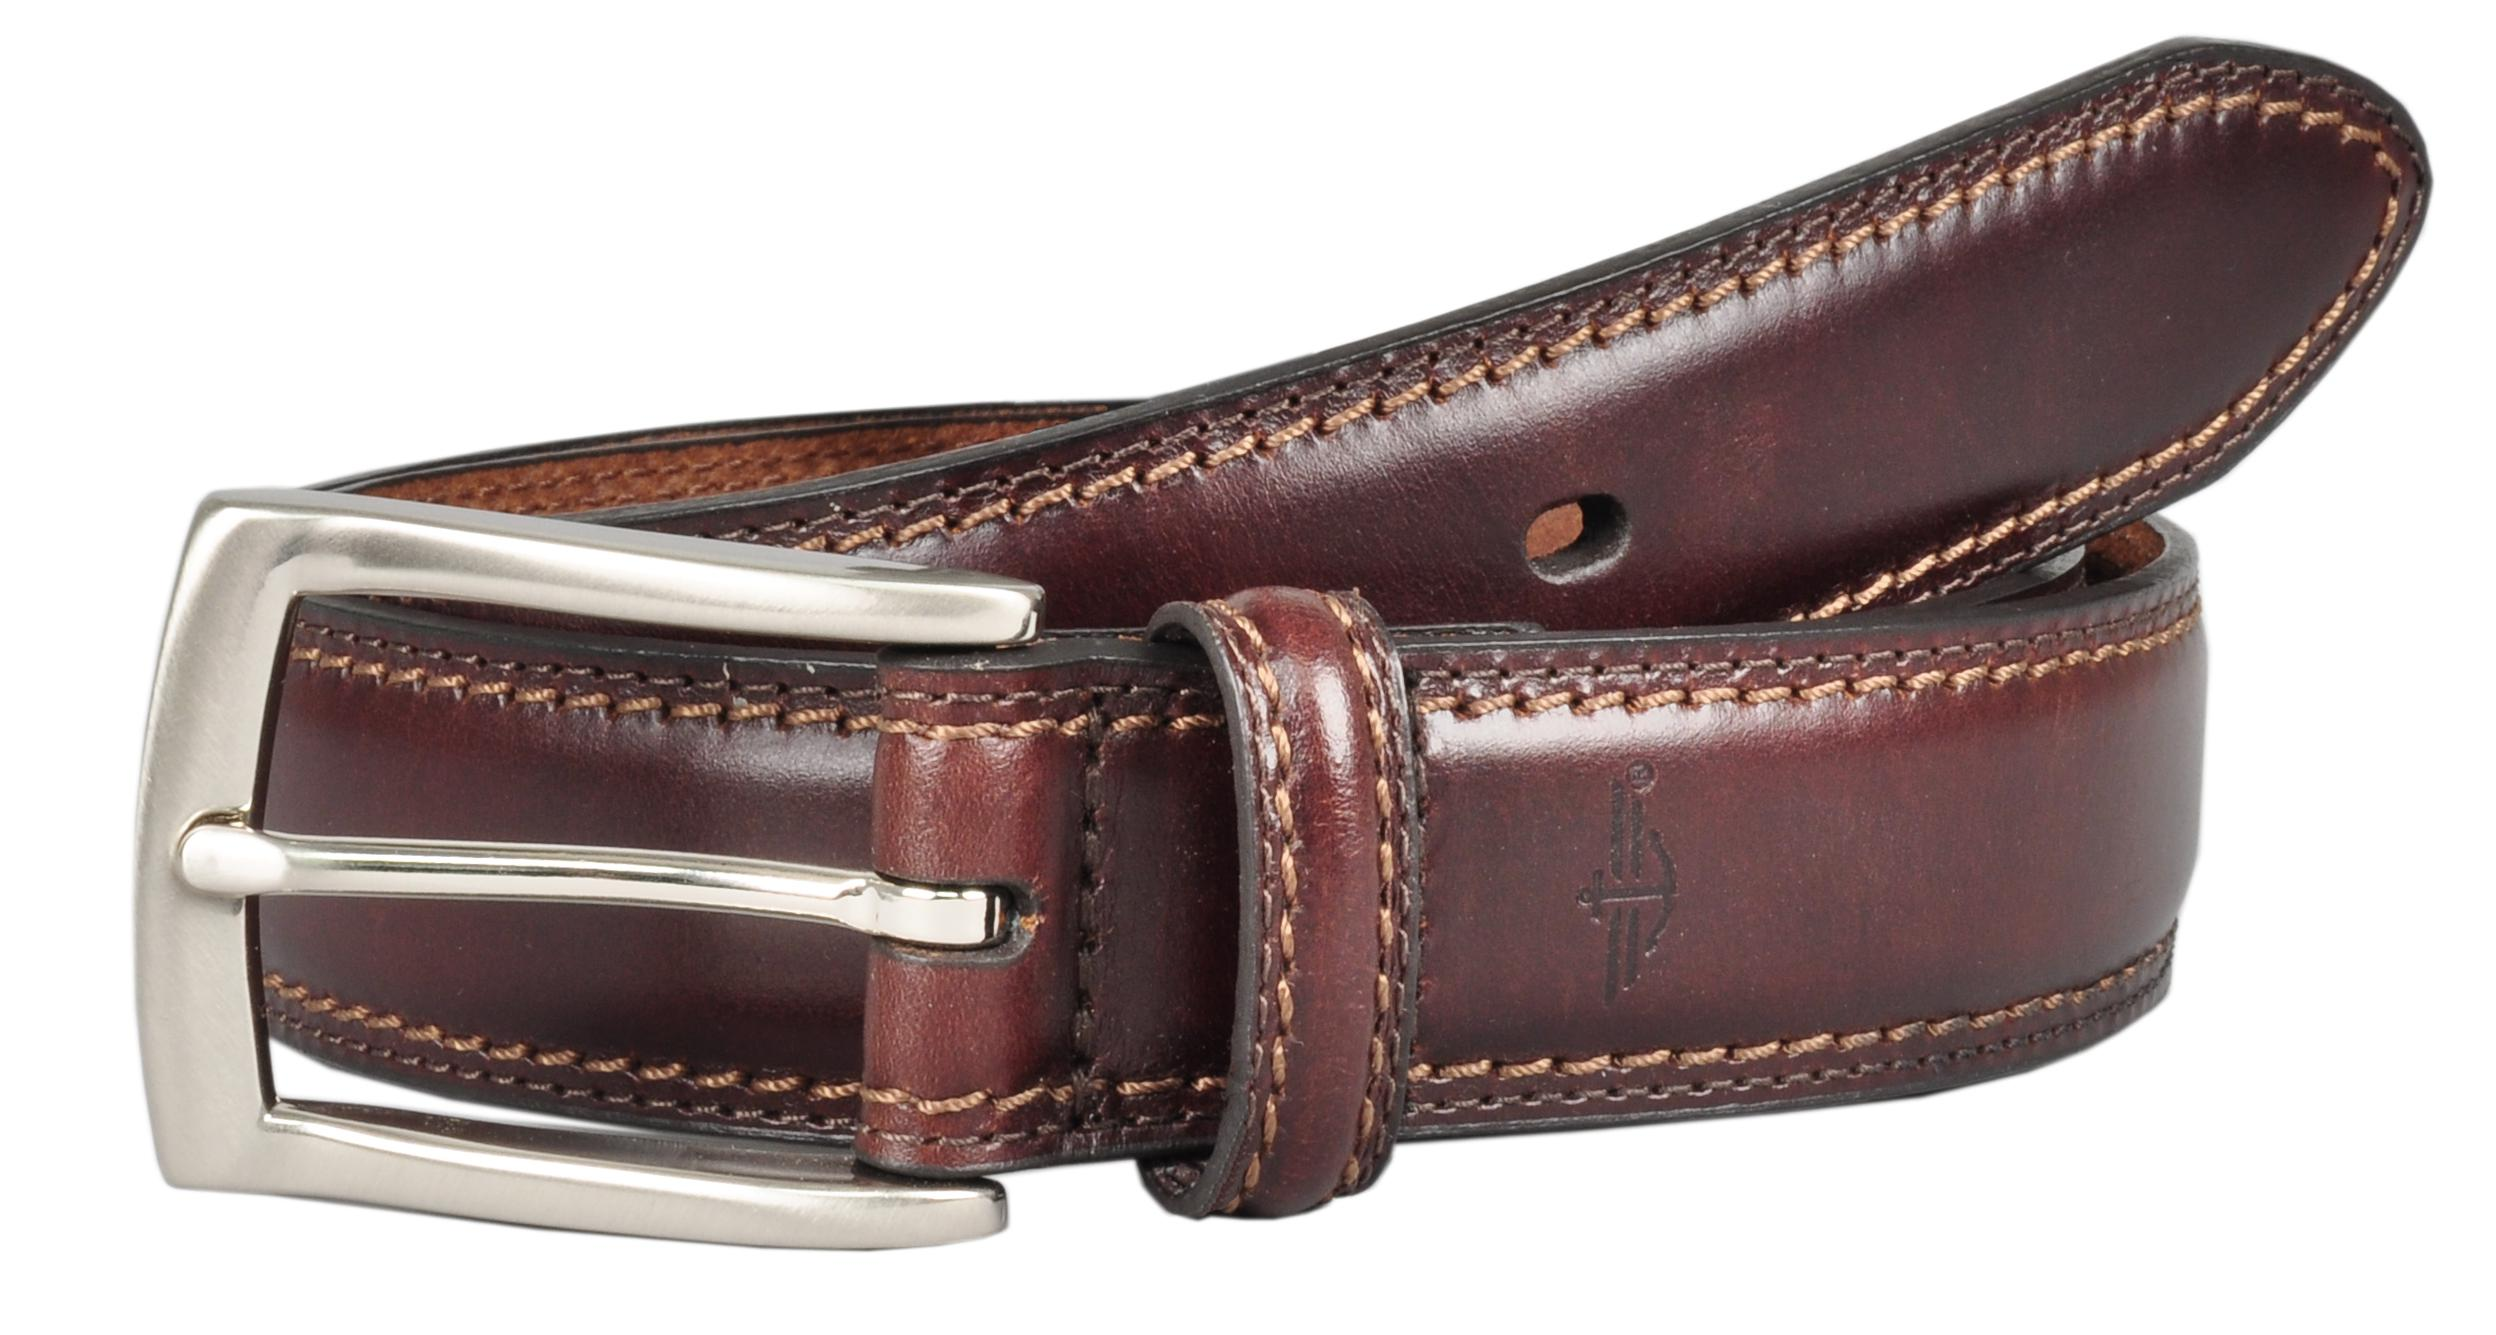 Dockers Mens Leather 1 1/4 Inch Feather Edge Padded Belt